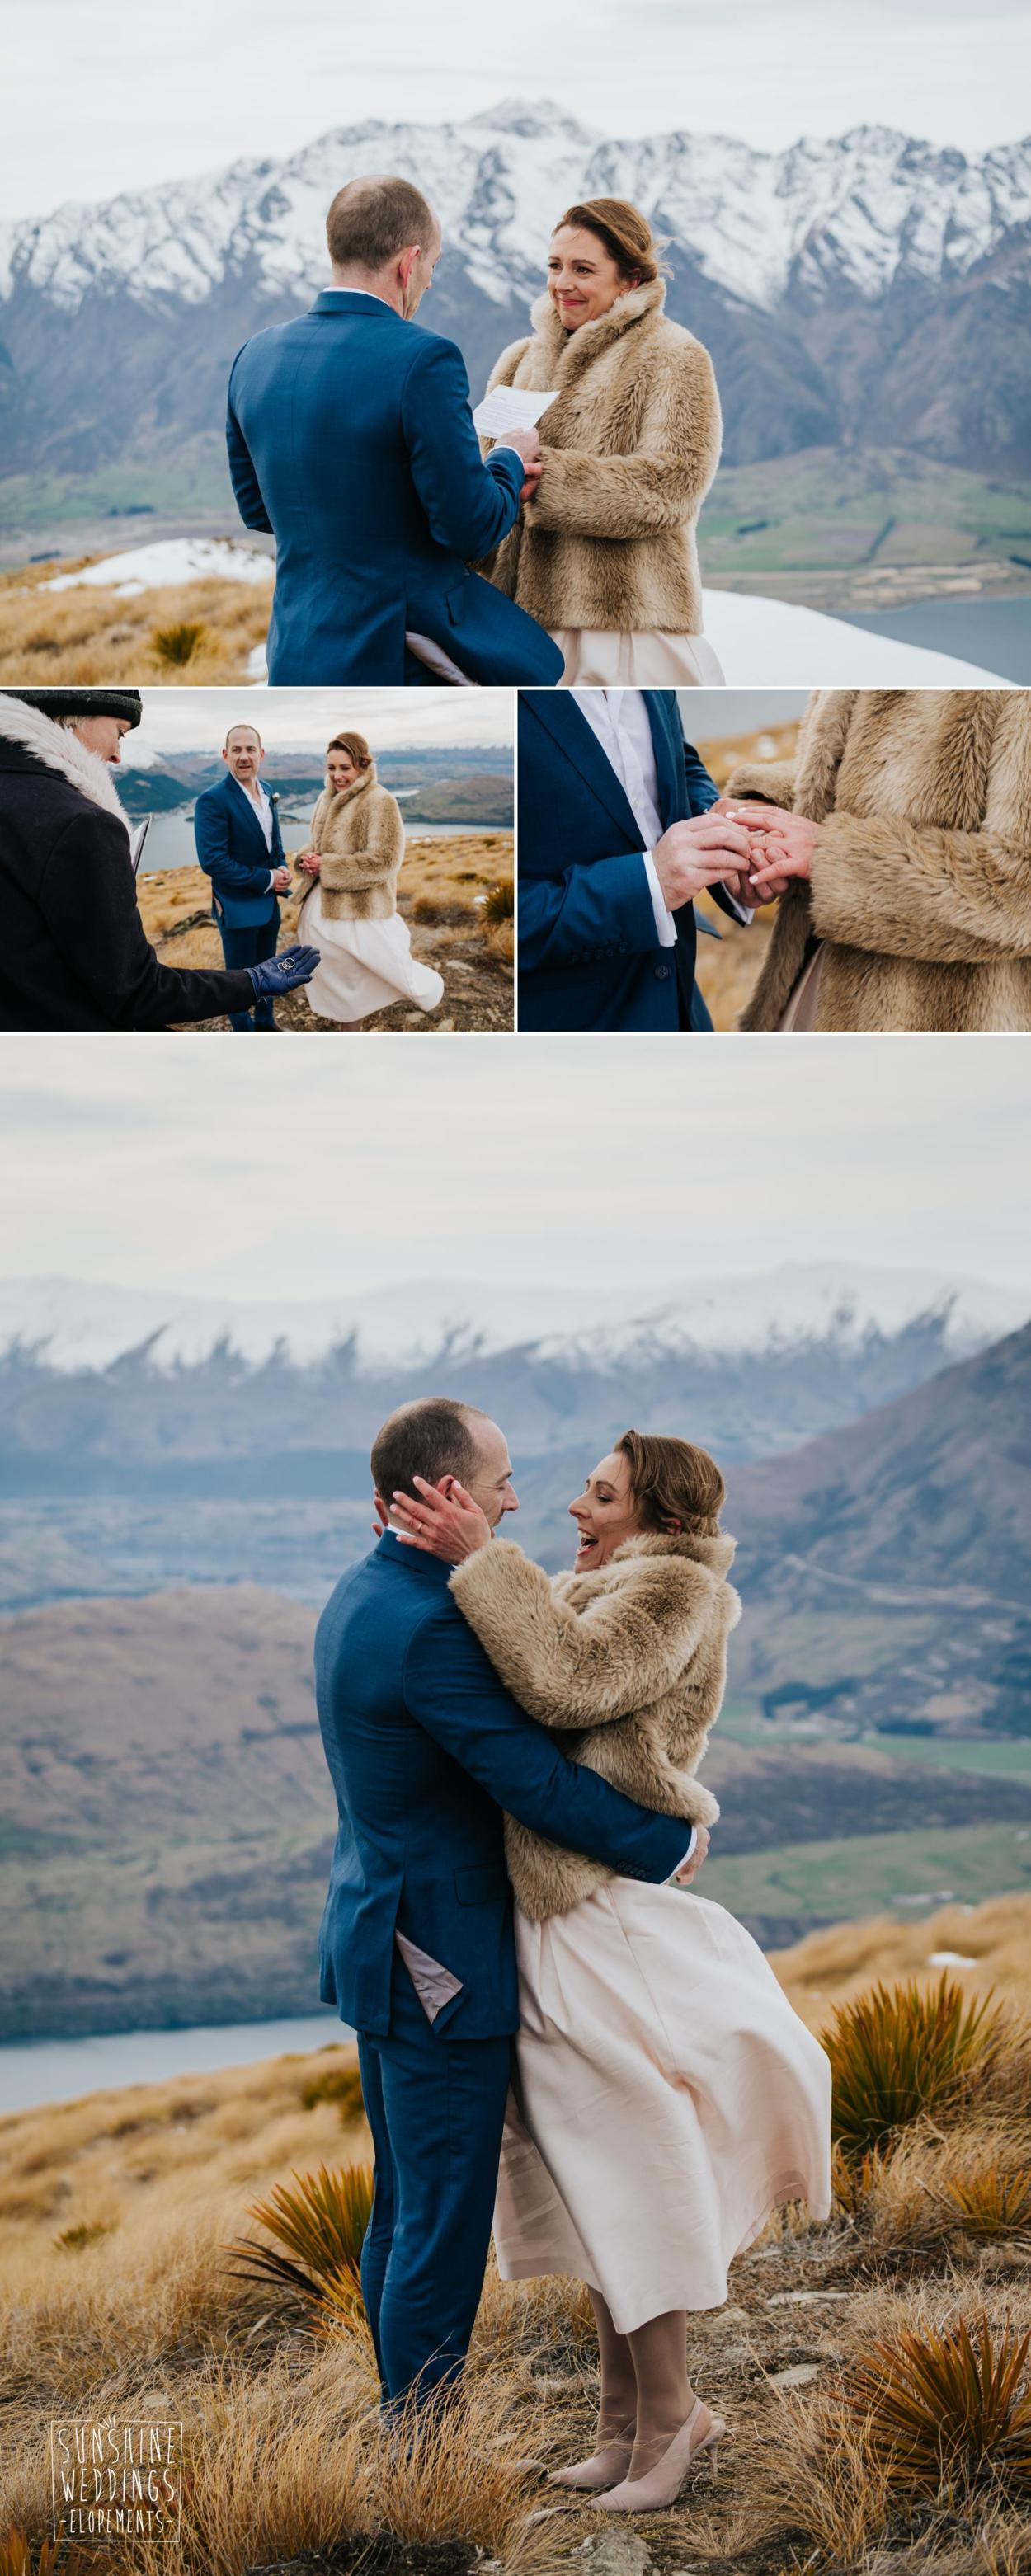 Wedding photographer Queenstown